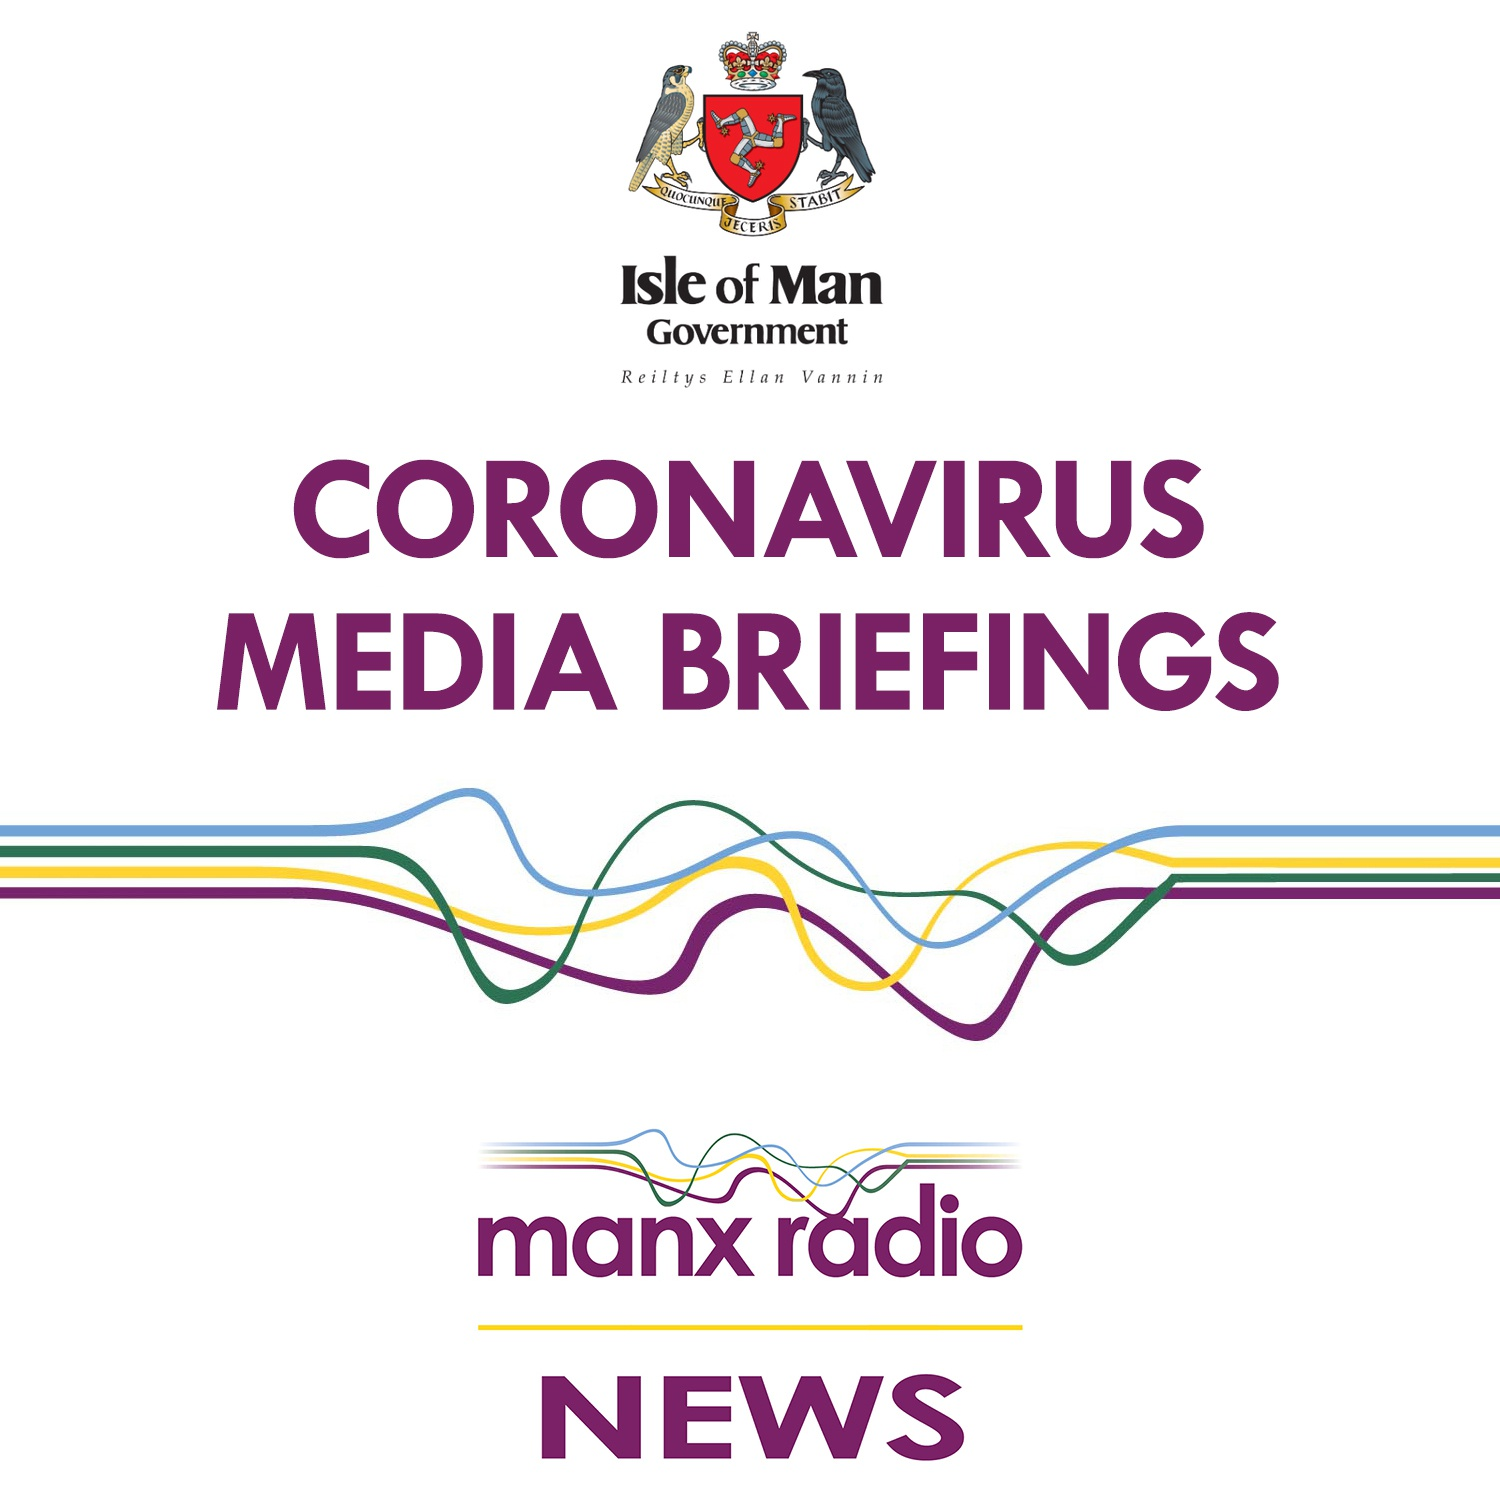 Coronavirus Media Briefings: Isle of Man - Manx Radio